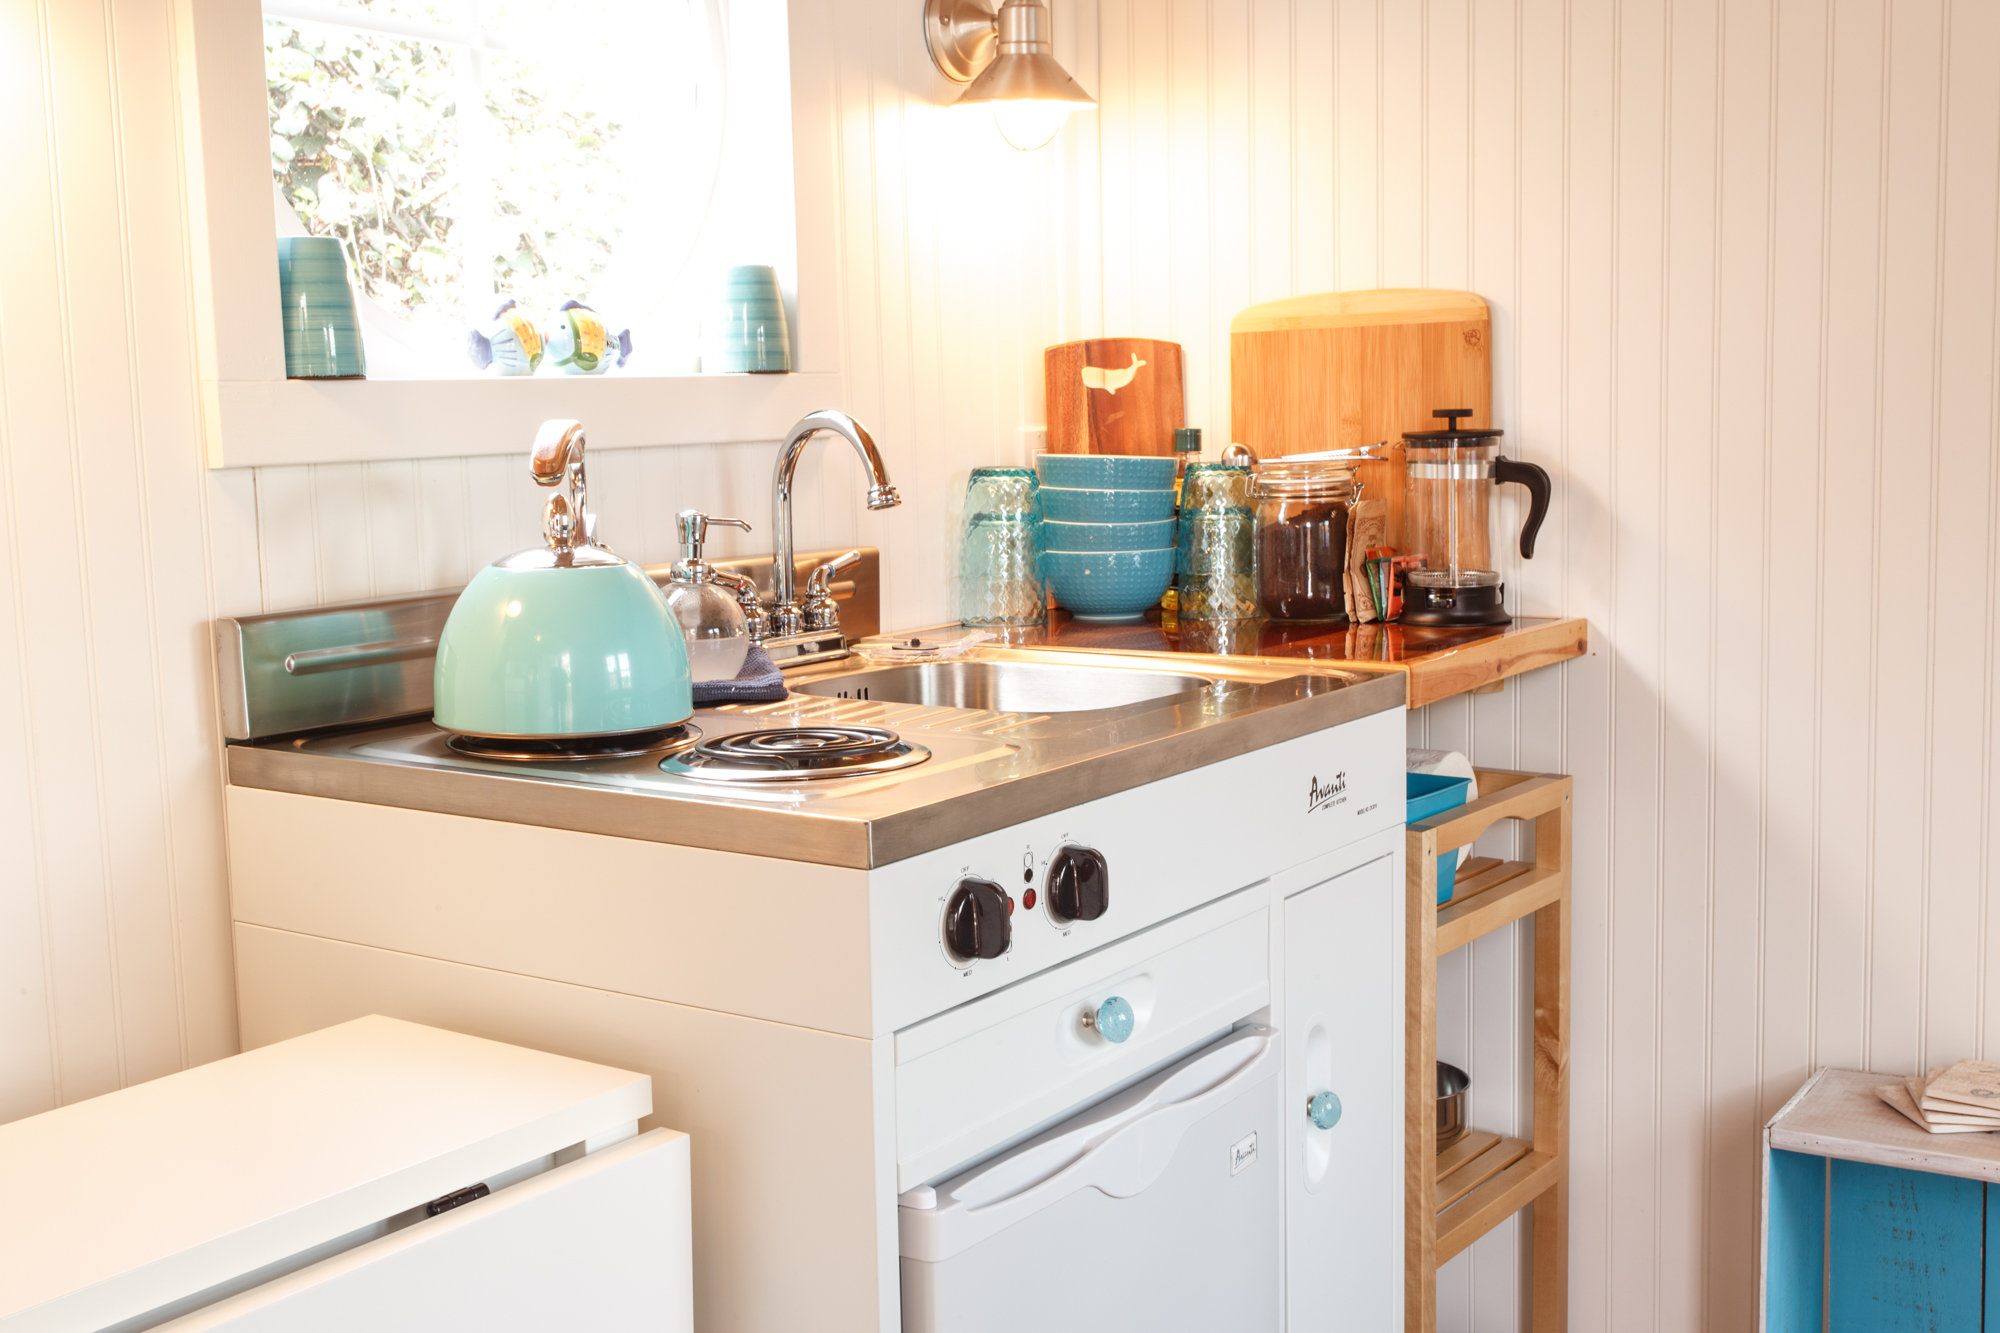 Tiny Home Kitchen Solutions That Maximize Limited Space - Straight ...